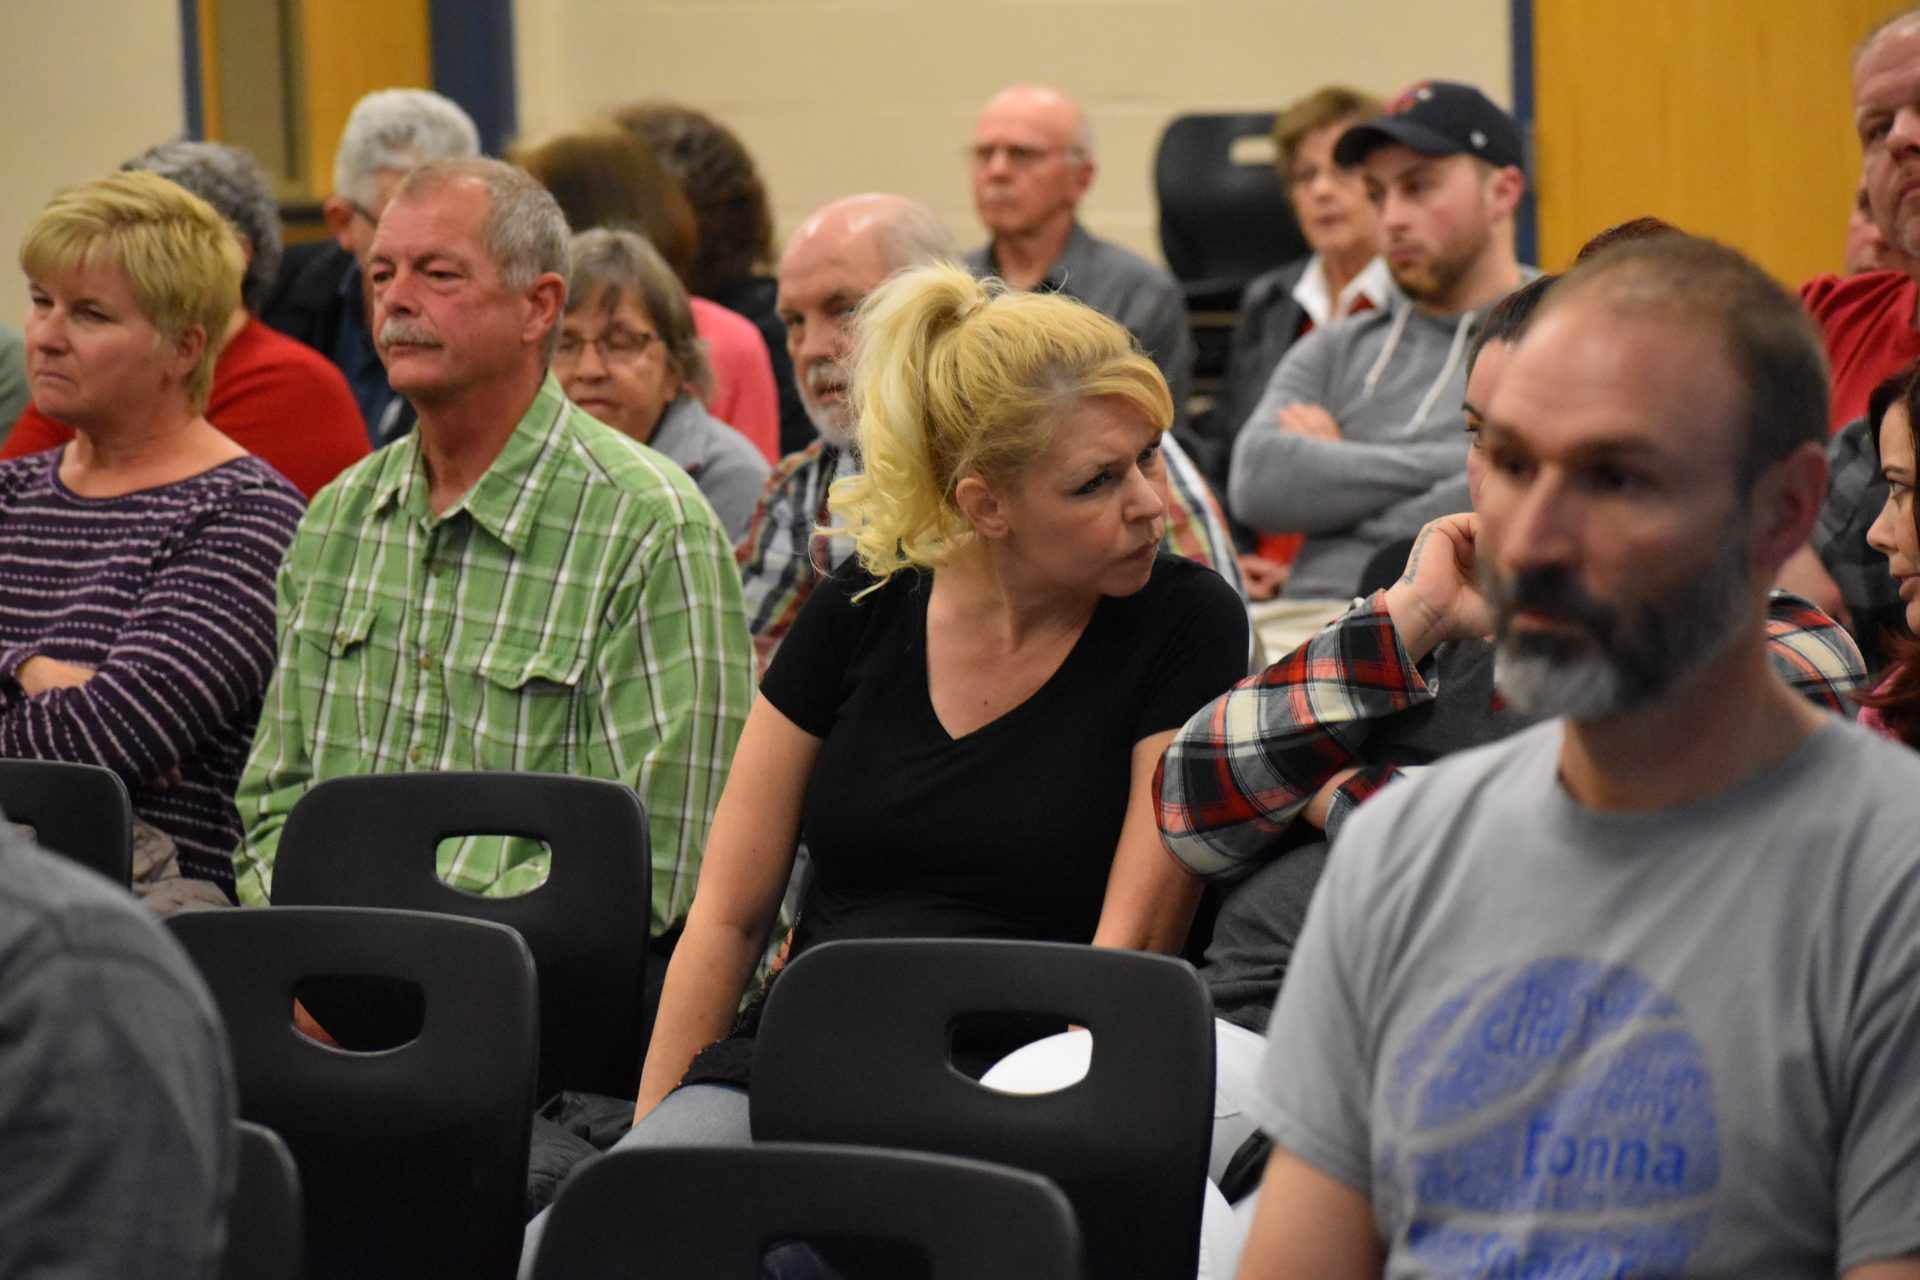 Hope Adkins-Durante, in the black shirt, listens to another community member during a meeting on March 14, 2019, in the Eastern Lancaster County School District.